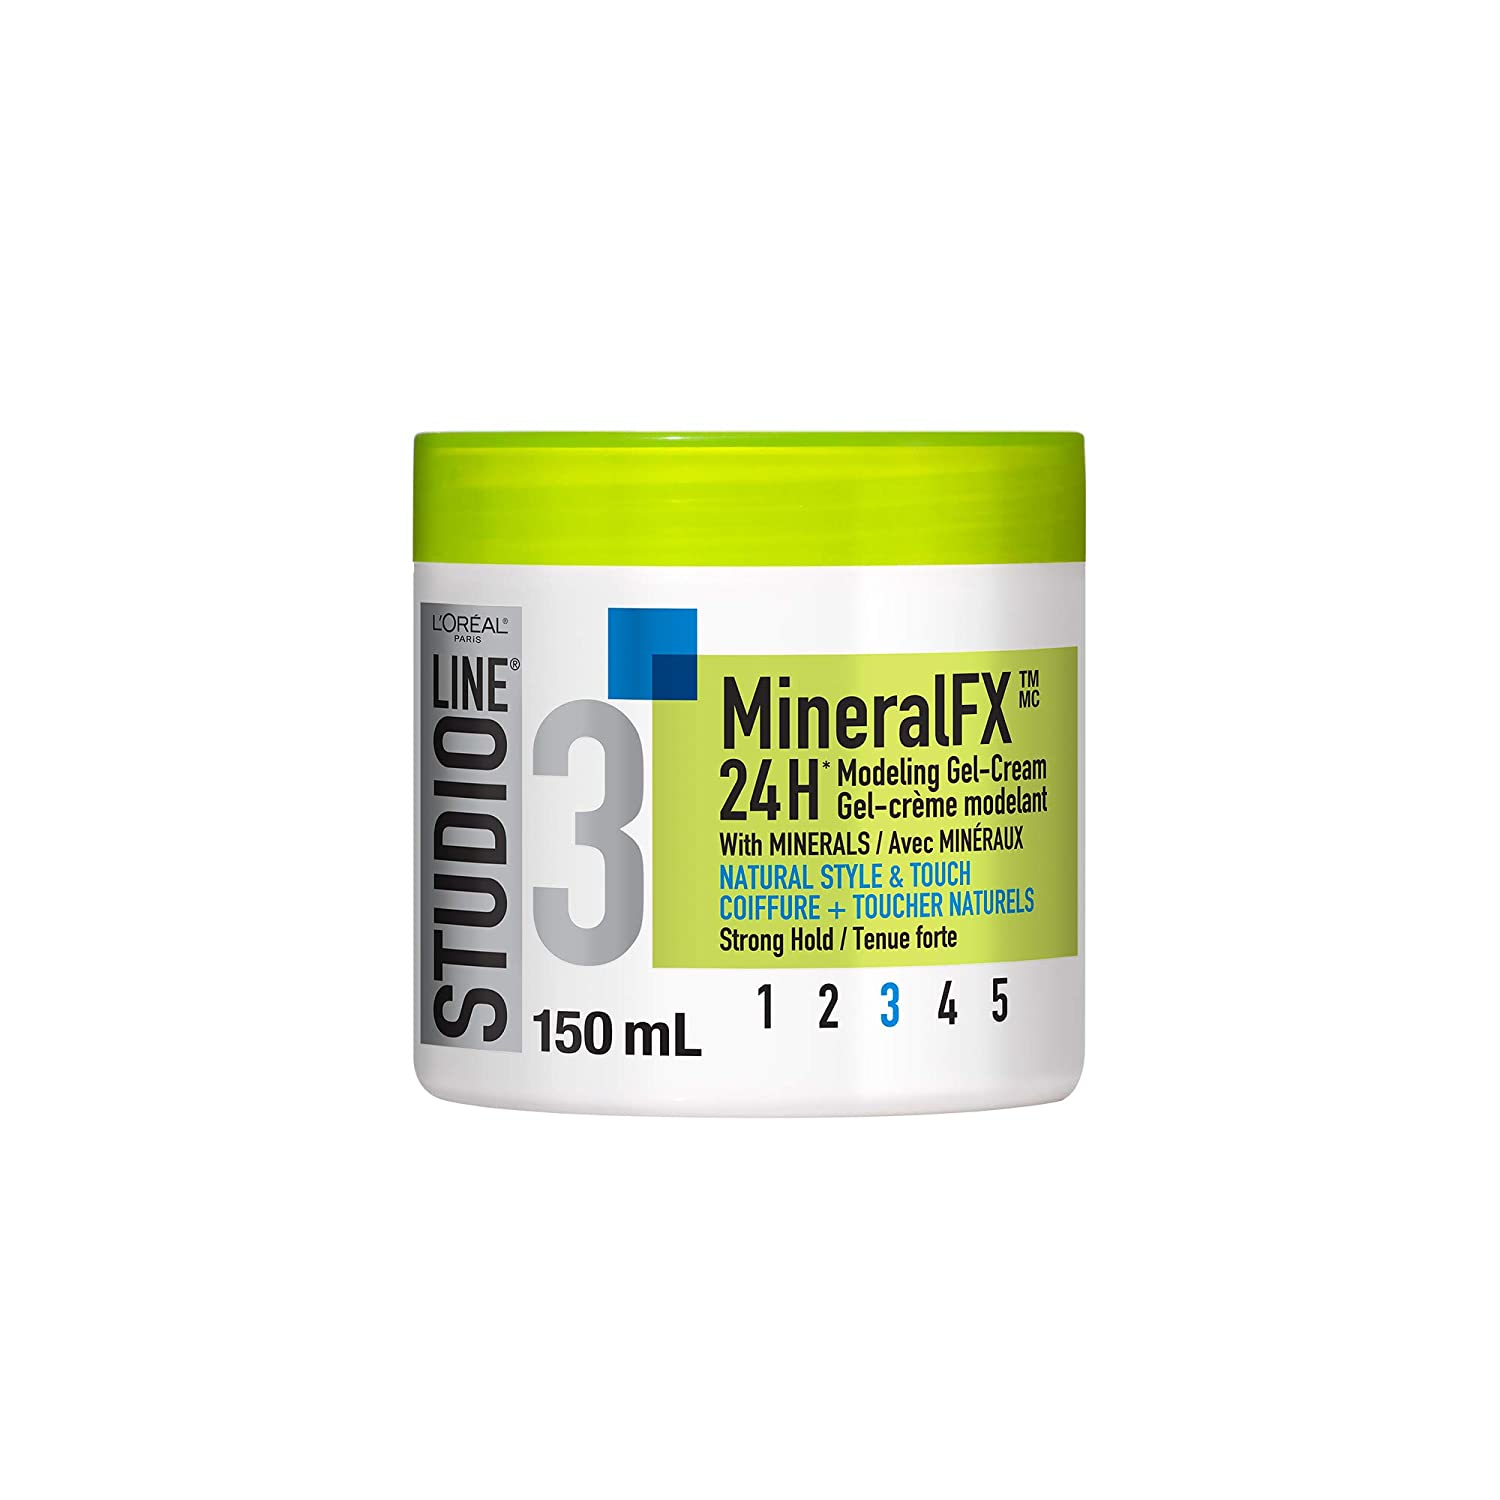 L'Oreal Paris Studio Line Mineralfx 24h Flexible Hold Gel-Cream, 150-Milliliter L' Oreal Paris